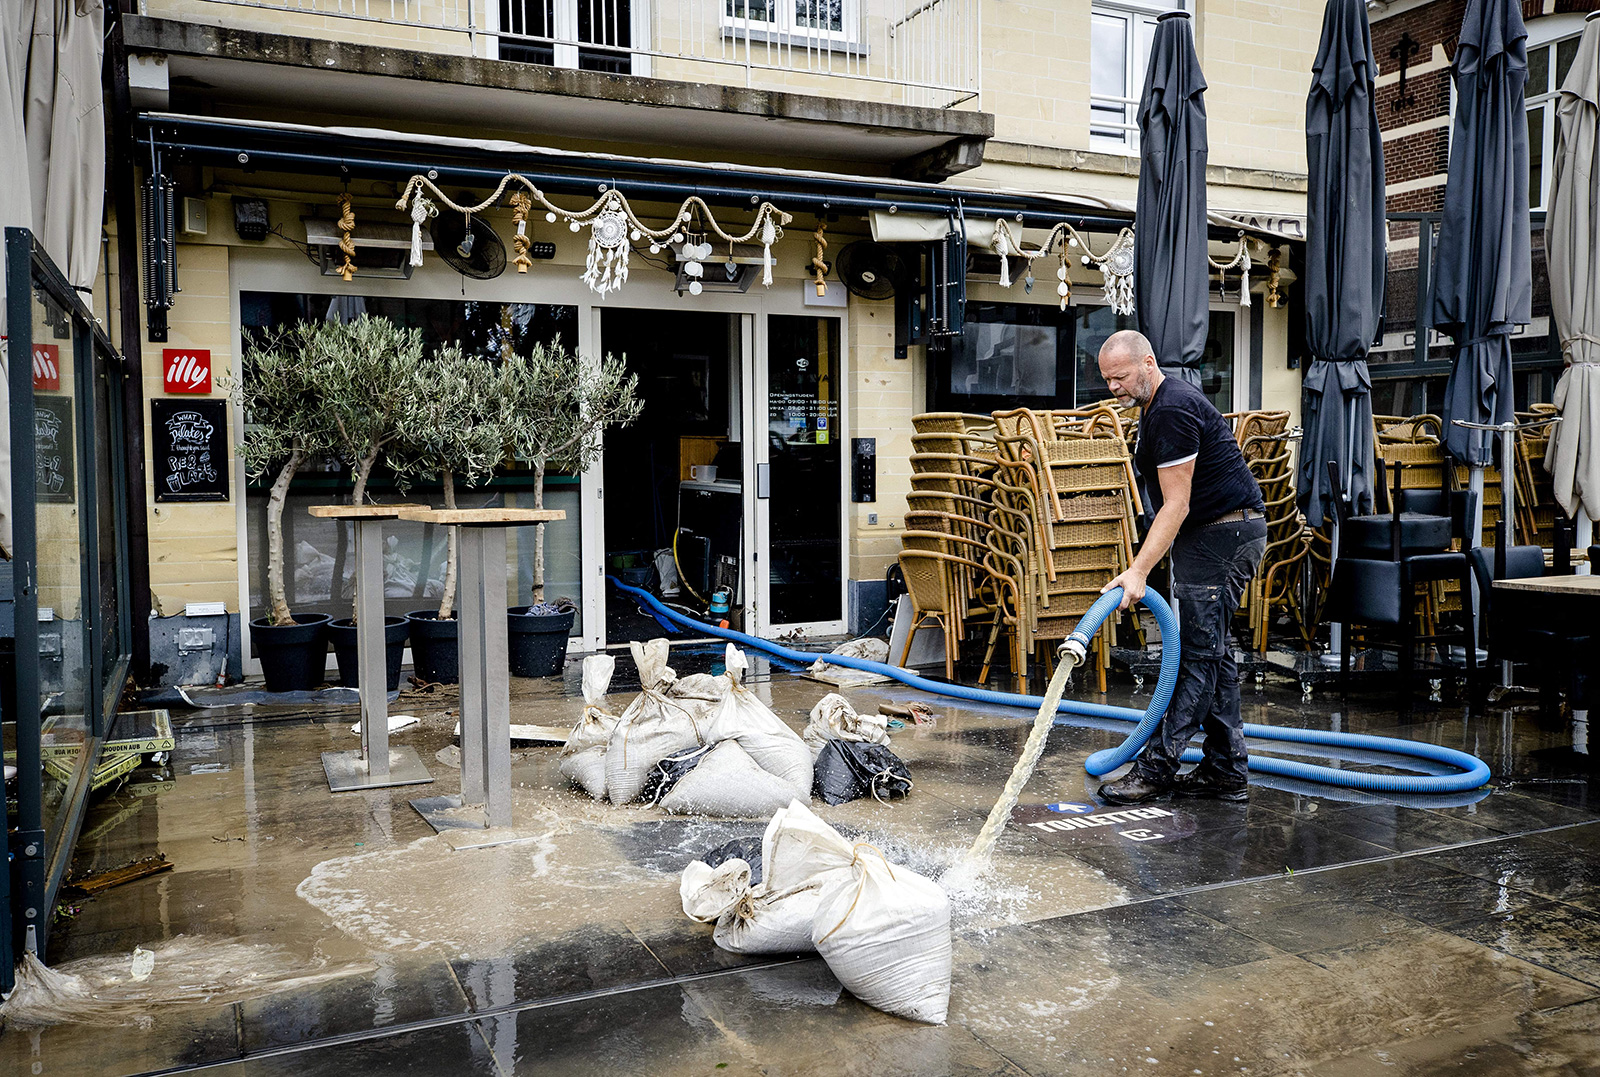 A business owner is pumping water out of his premises, following the damage inflicted by the flooding Geul river in Valkenburg on July 16.